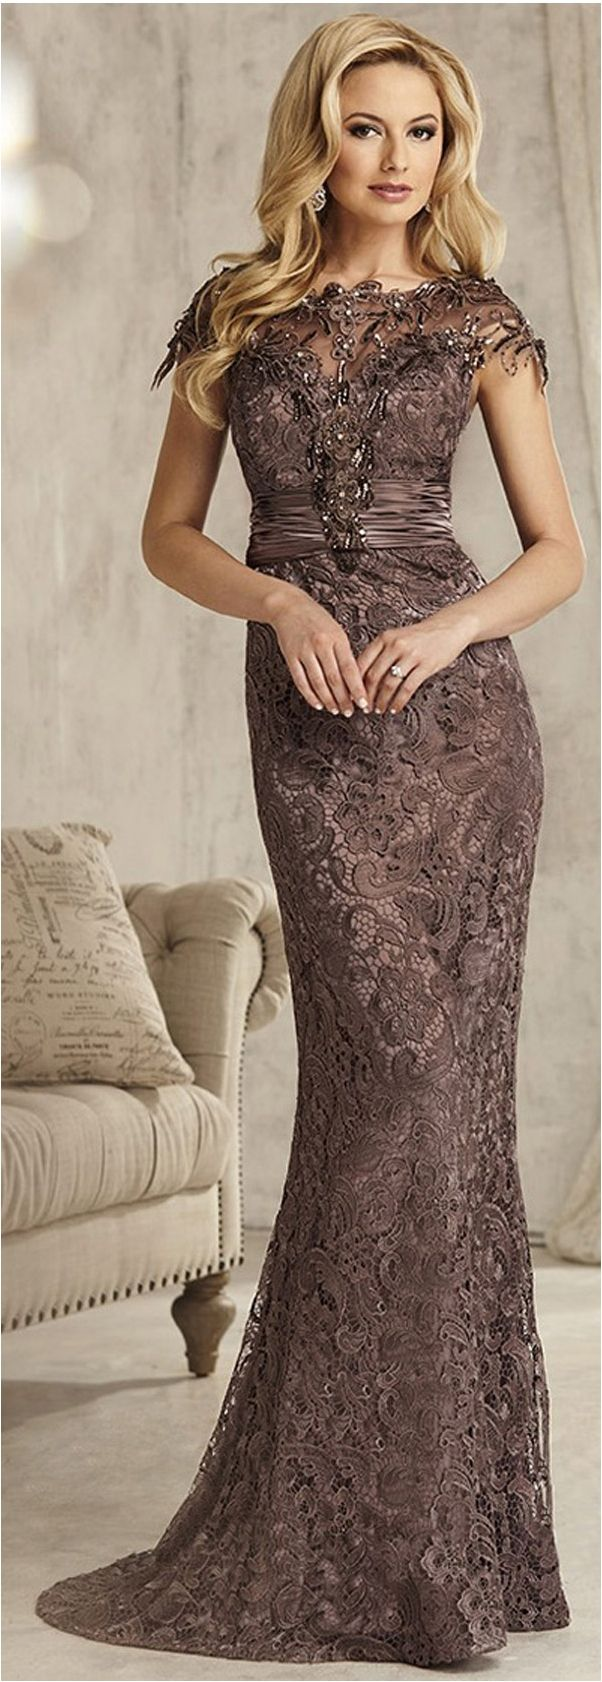 Best Mother Of The Bride Dresses For 2018 - Wedding ...